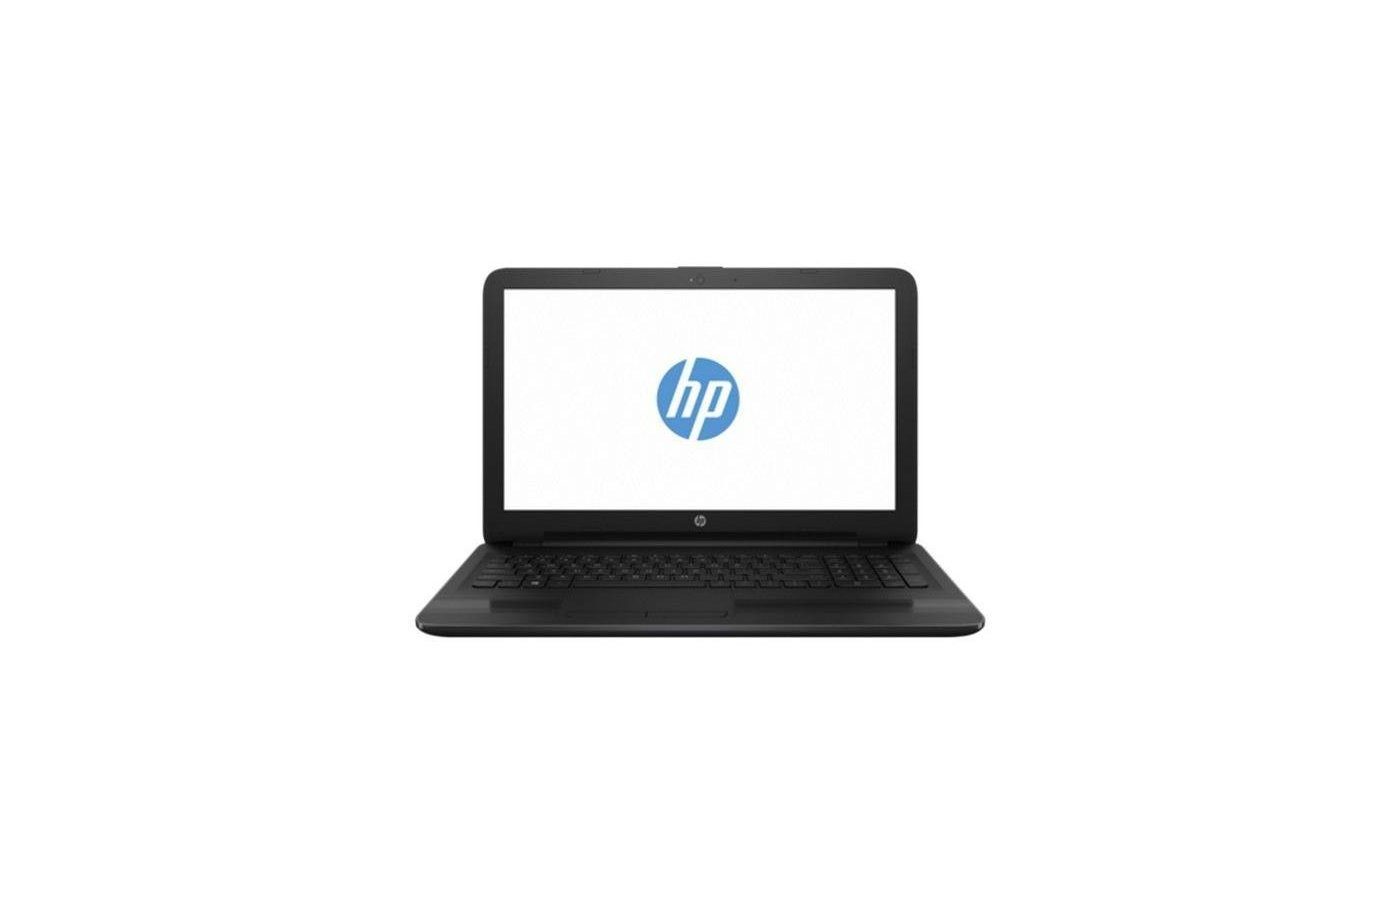 Ноутбук HP 15-ay522UR /X4L65EA/ intel N3060/4Gb/500Gb/15.6/WiFi/Win10